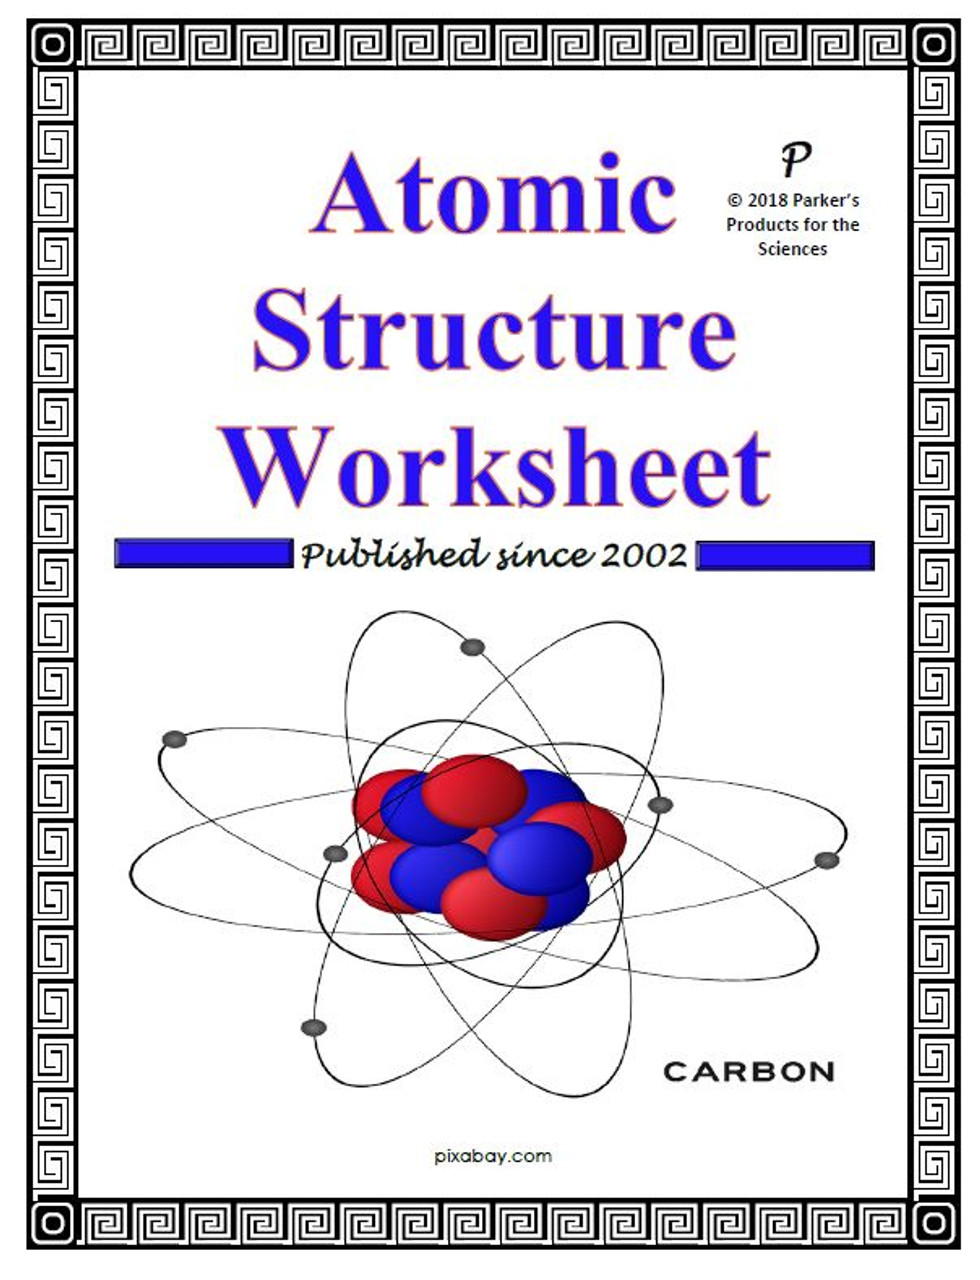 medium resolution of Atomic Structure Worksheet - Amped Up Learning